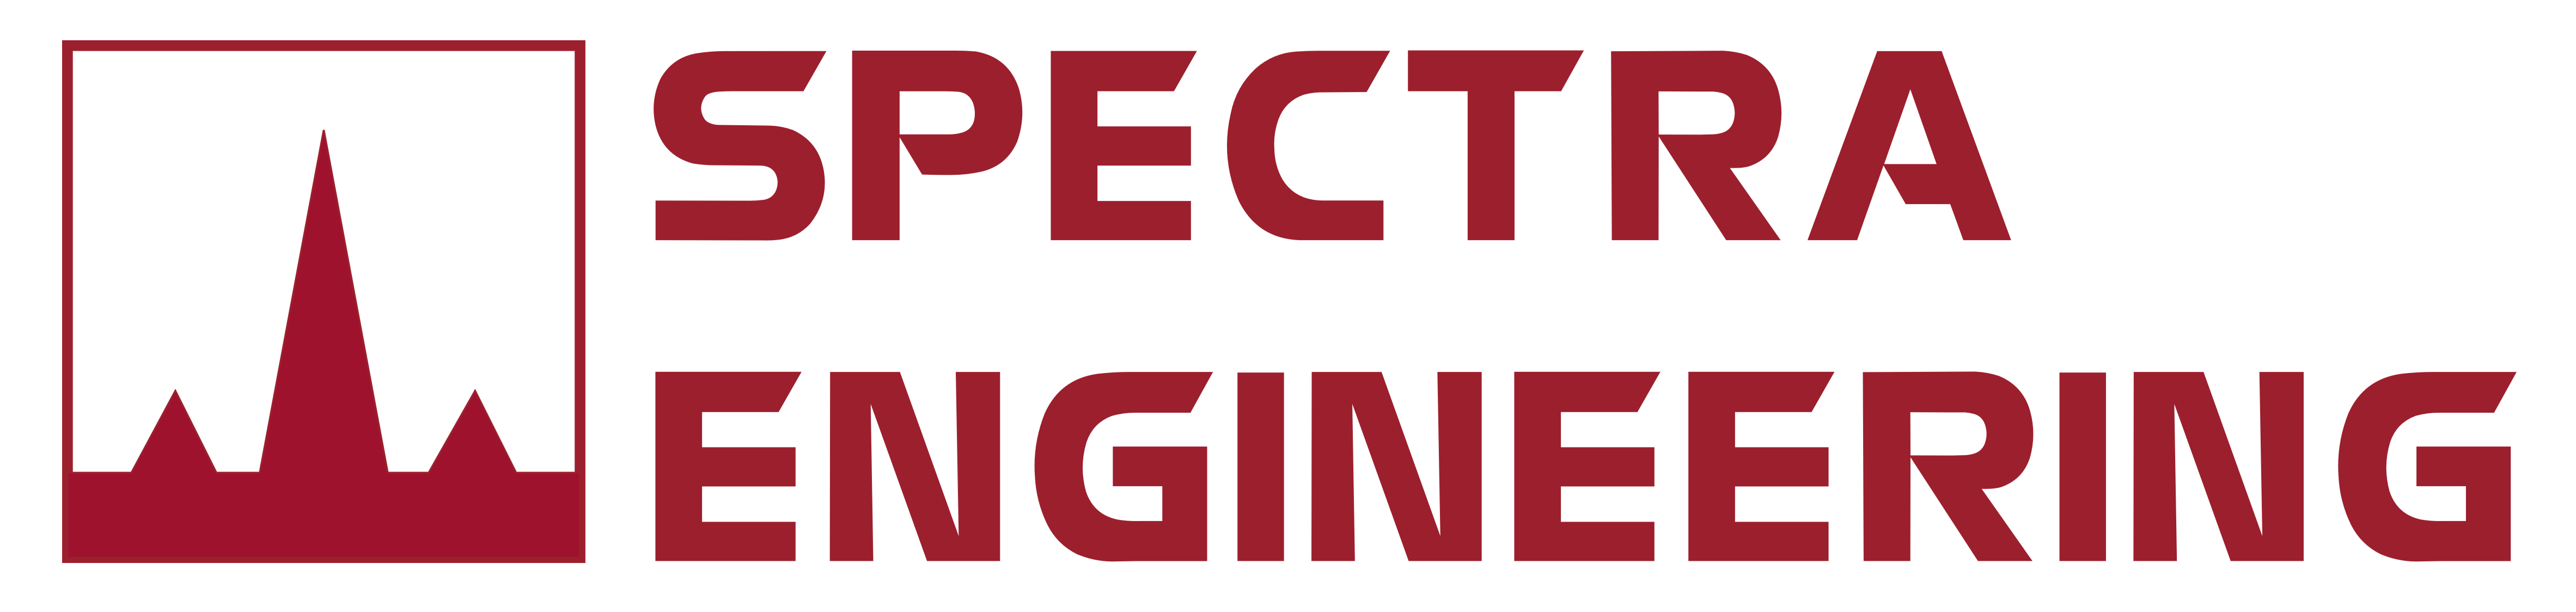 Spectra Engineering logo